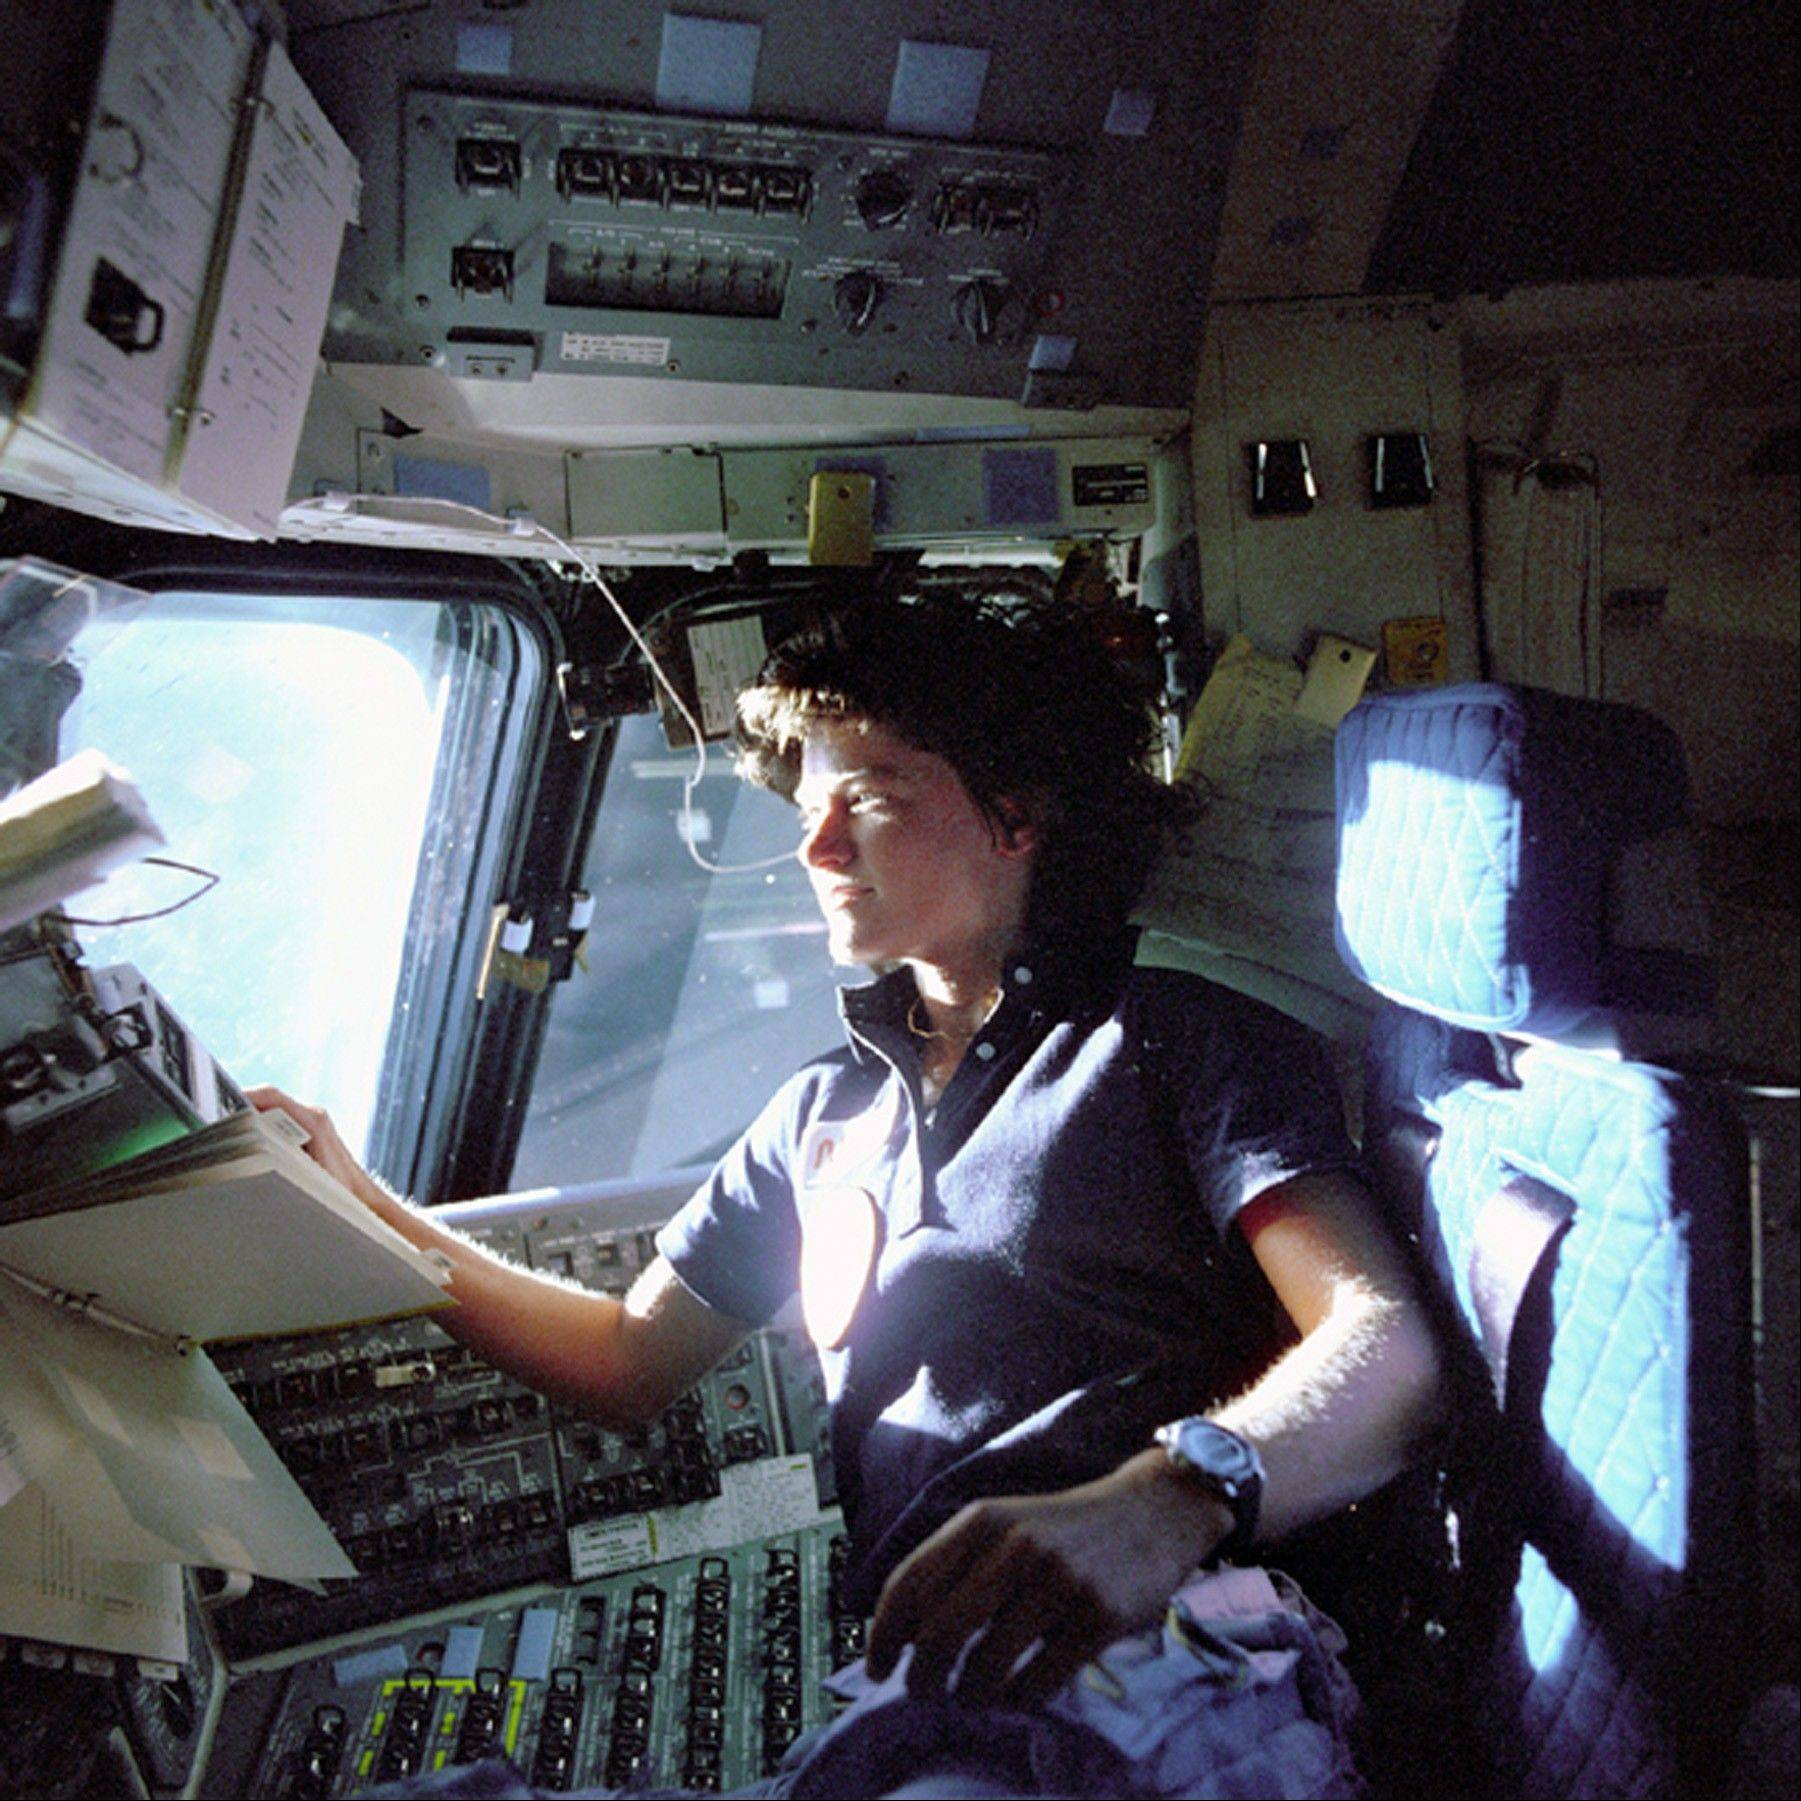 In this June 1983 photo provided by NASA, astronaut Sally Ride, a specialist on shuttle mission STS-7, monitors control panels from the pilot's chair on the shuttle Columbia flight deck. Ride became America's first woman in space when Columbia launched June 18, 1983.